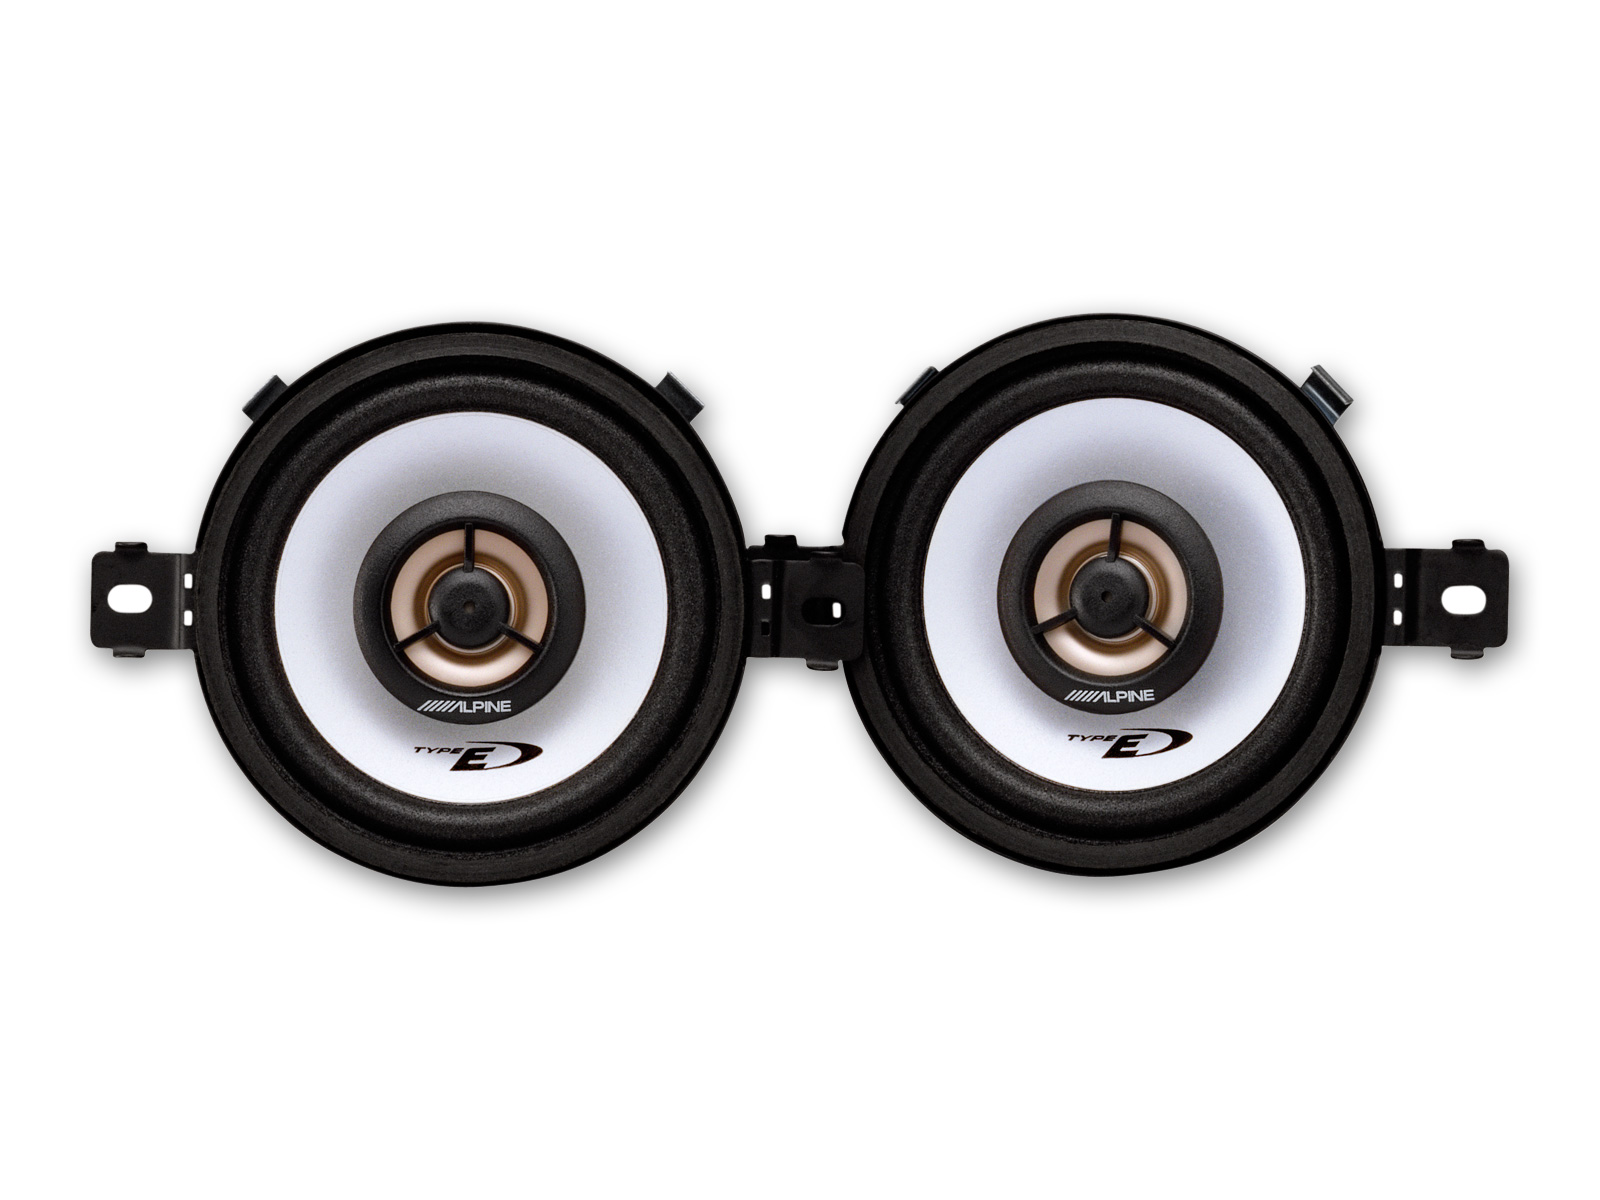 http://italy.alpine-europe.com/fileadmin/images/MainNavigation/Products/Product_pics/14_Speakers/06_CustomFit_Speakers/SXE0825S/productpic_SXE0825S_01.jpg